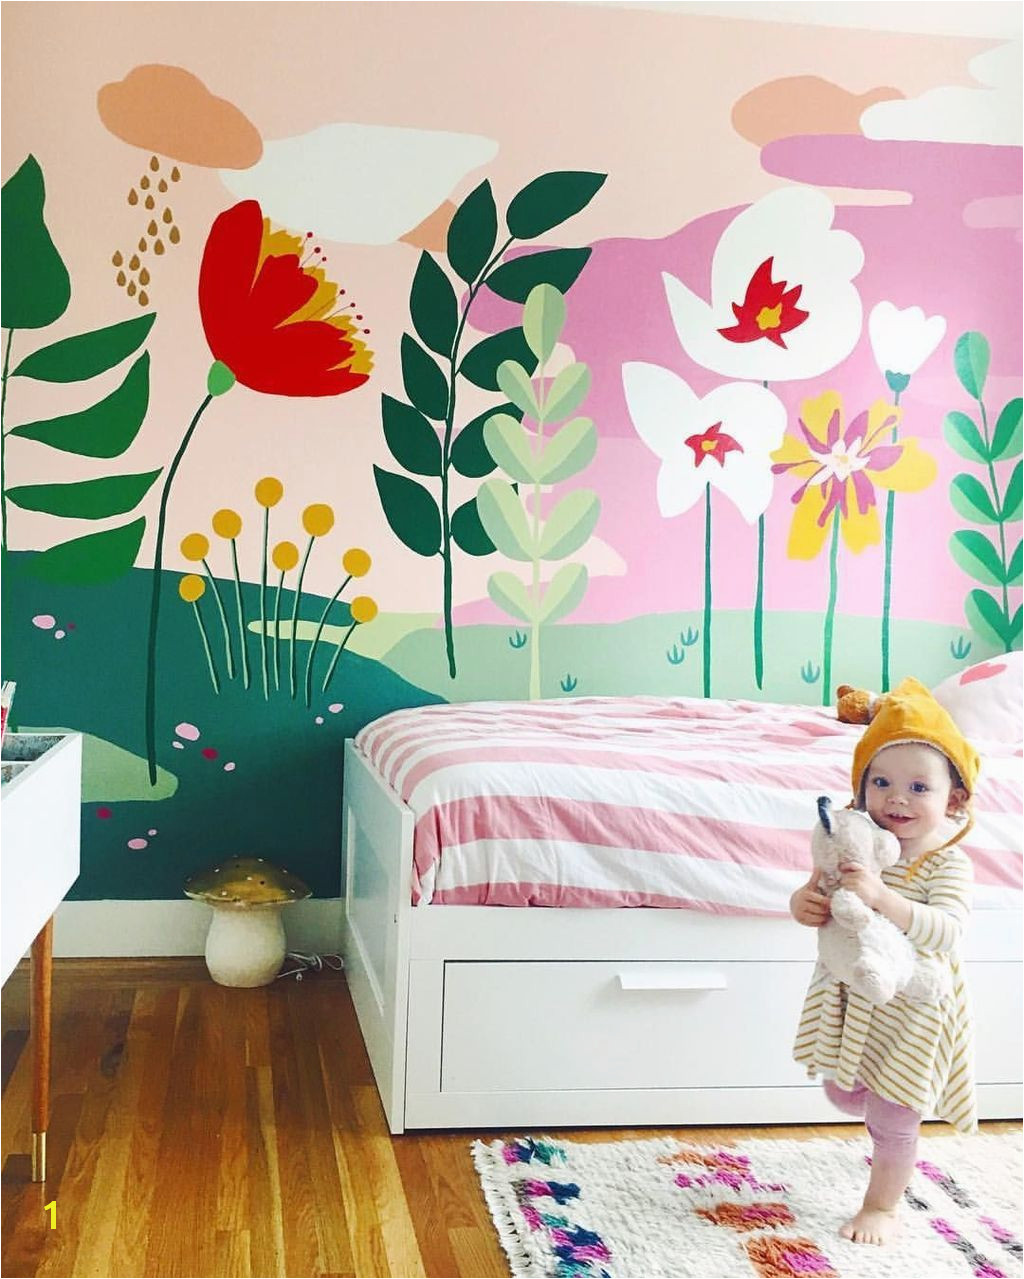 Wall Murals for Kids Playrooms 20 Easy Playroom Mural Design Ideas for Kids Diy